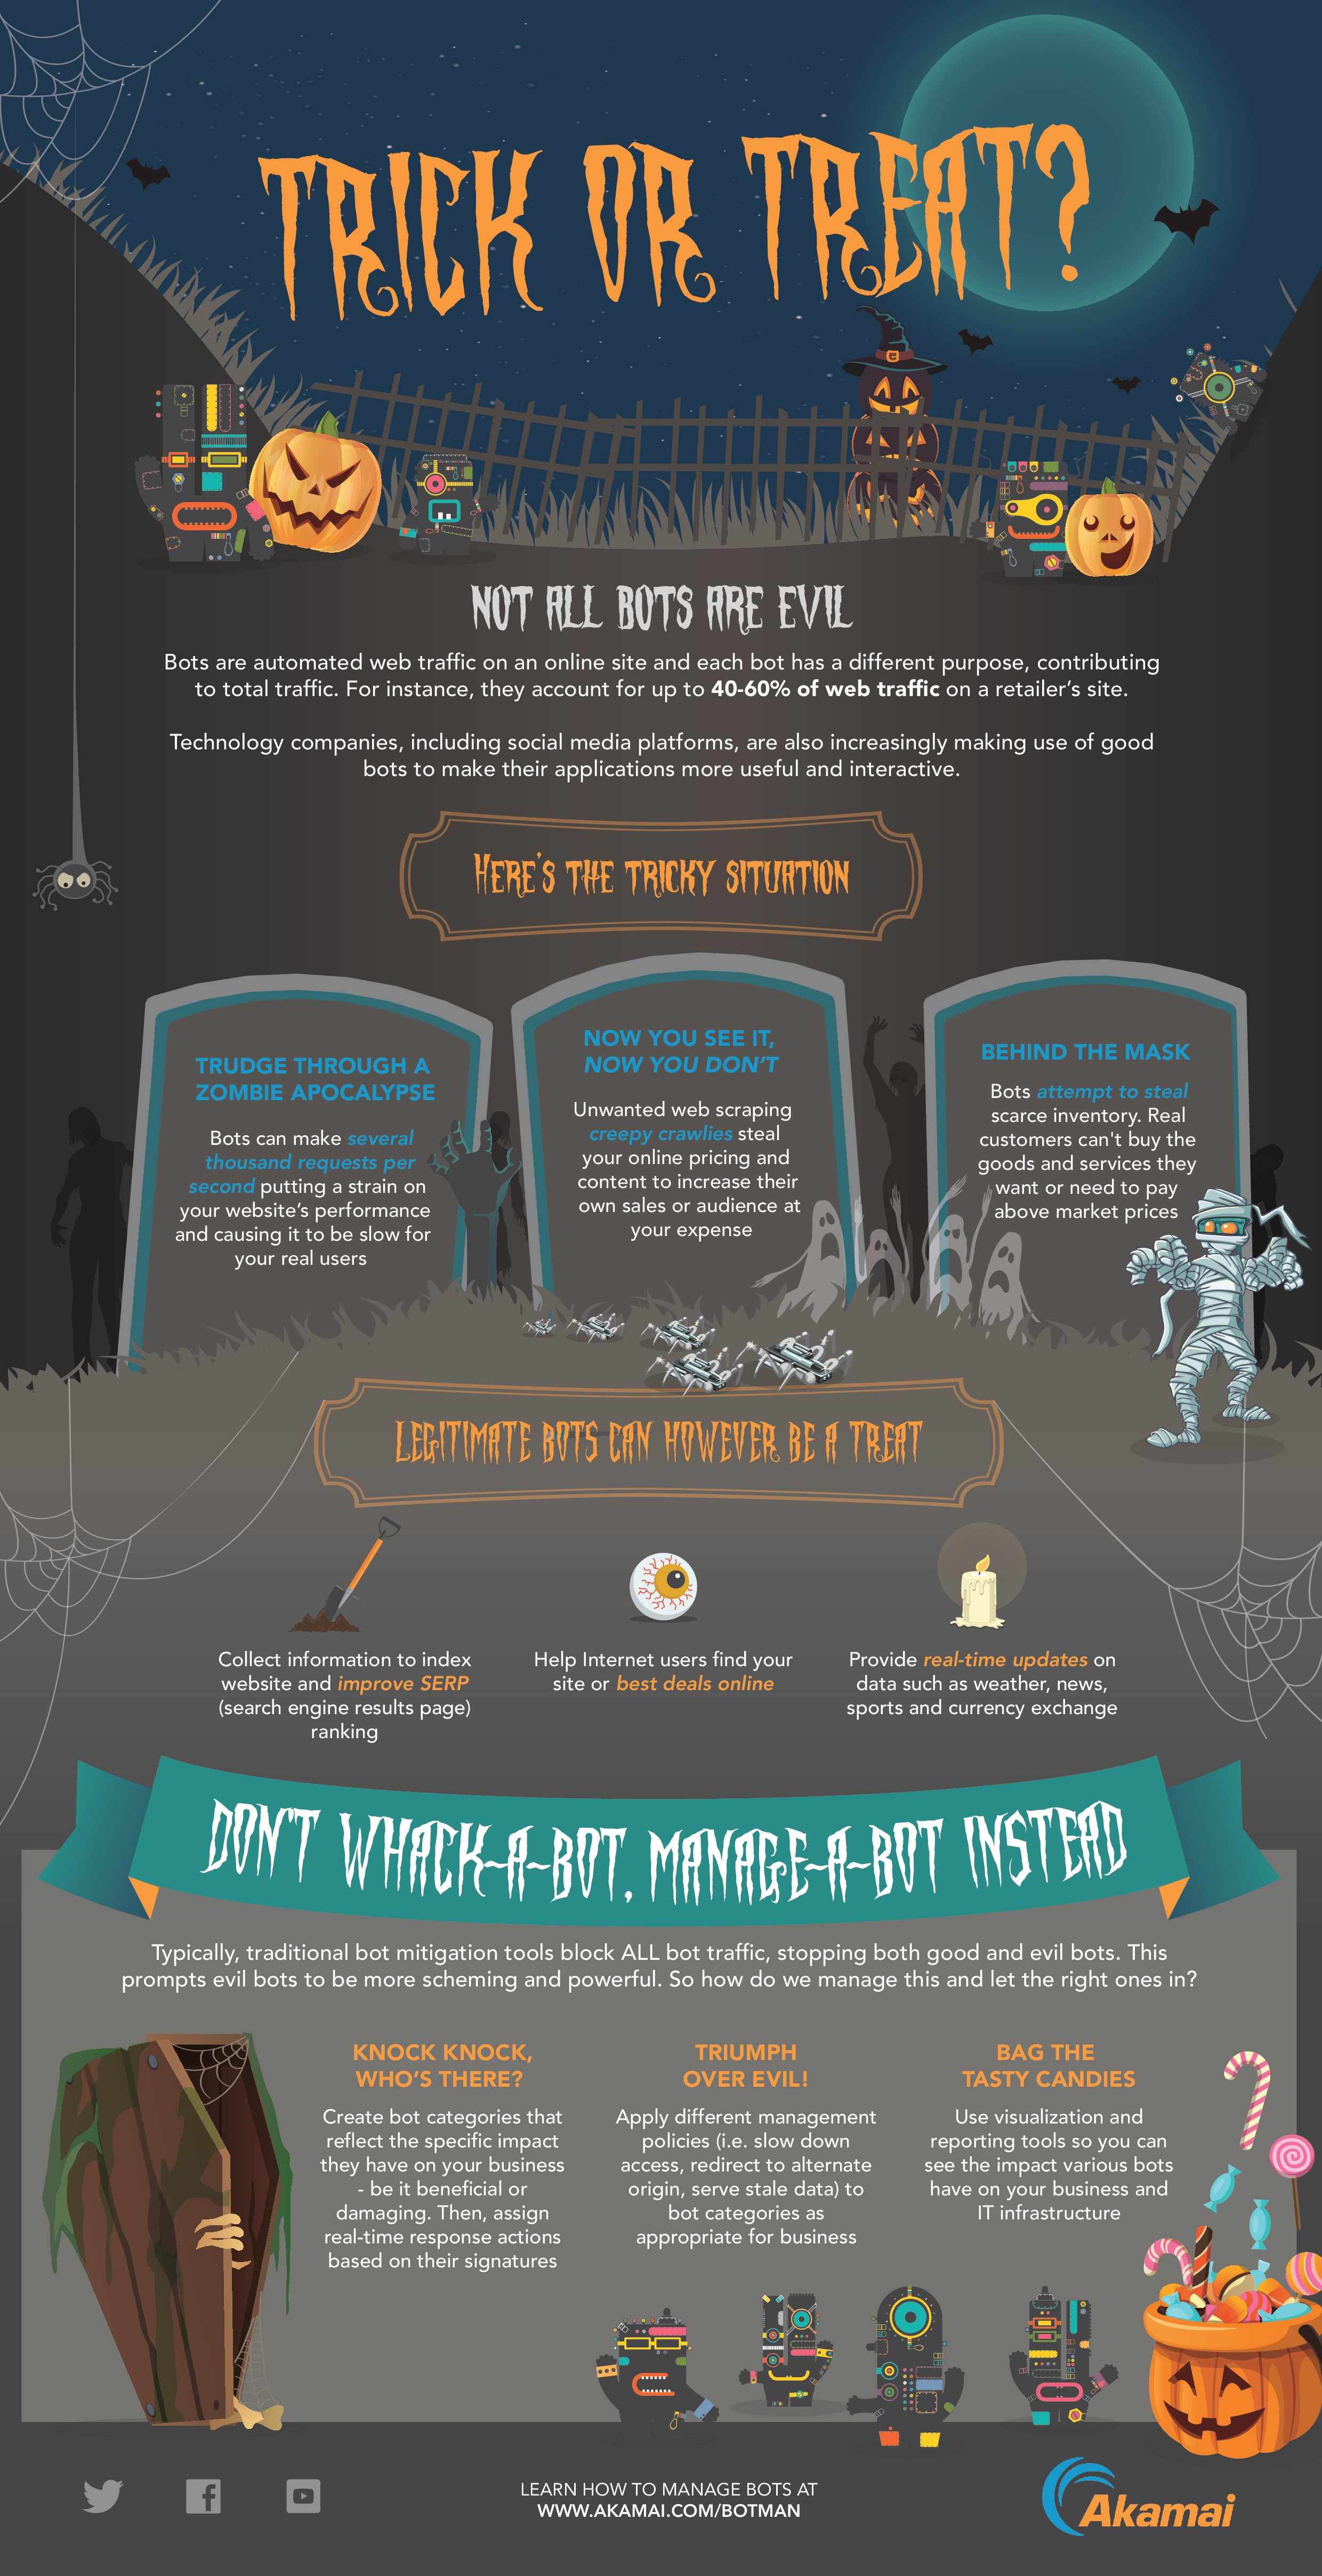 akamai-infographic-trick-or-treat_not-all-bots-are-evil-page-0